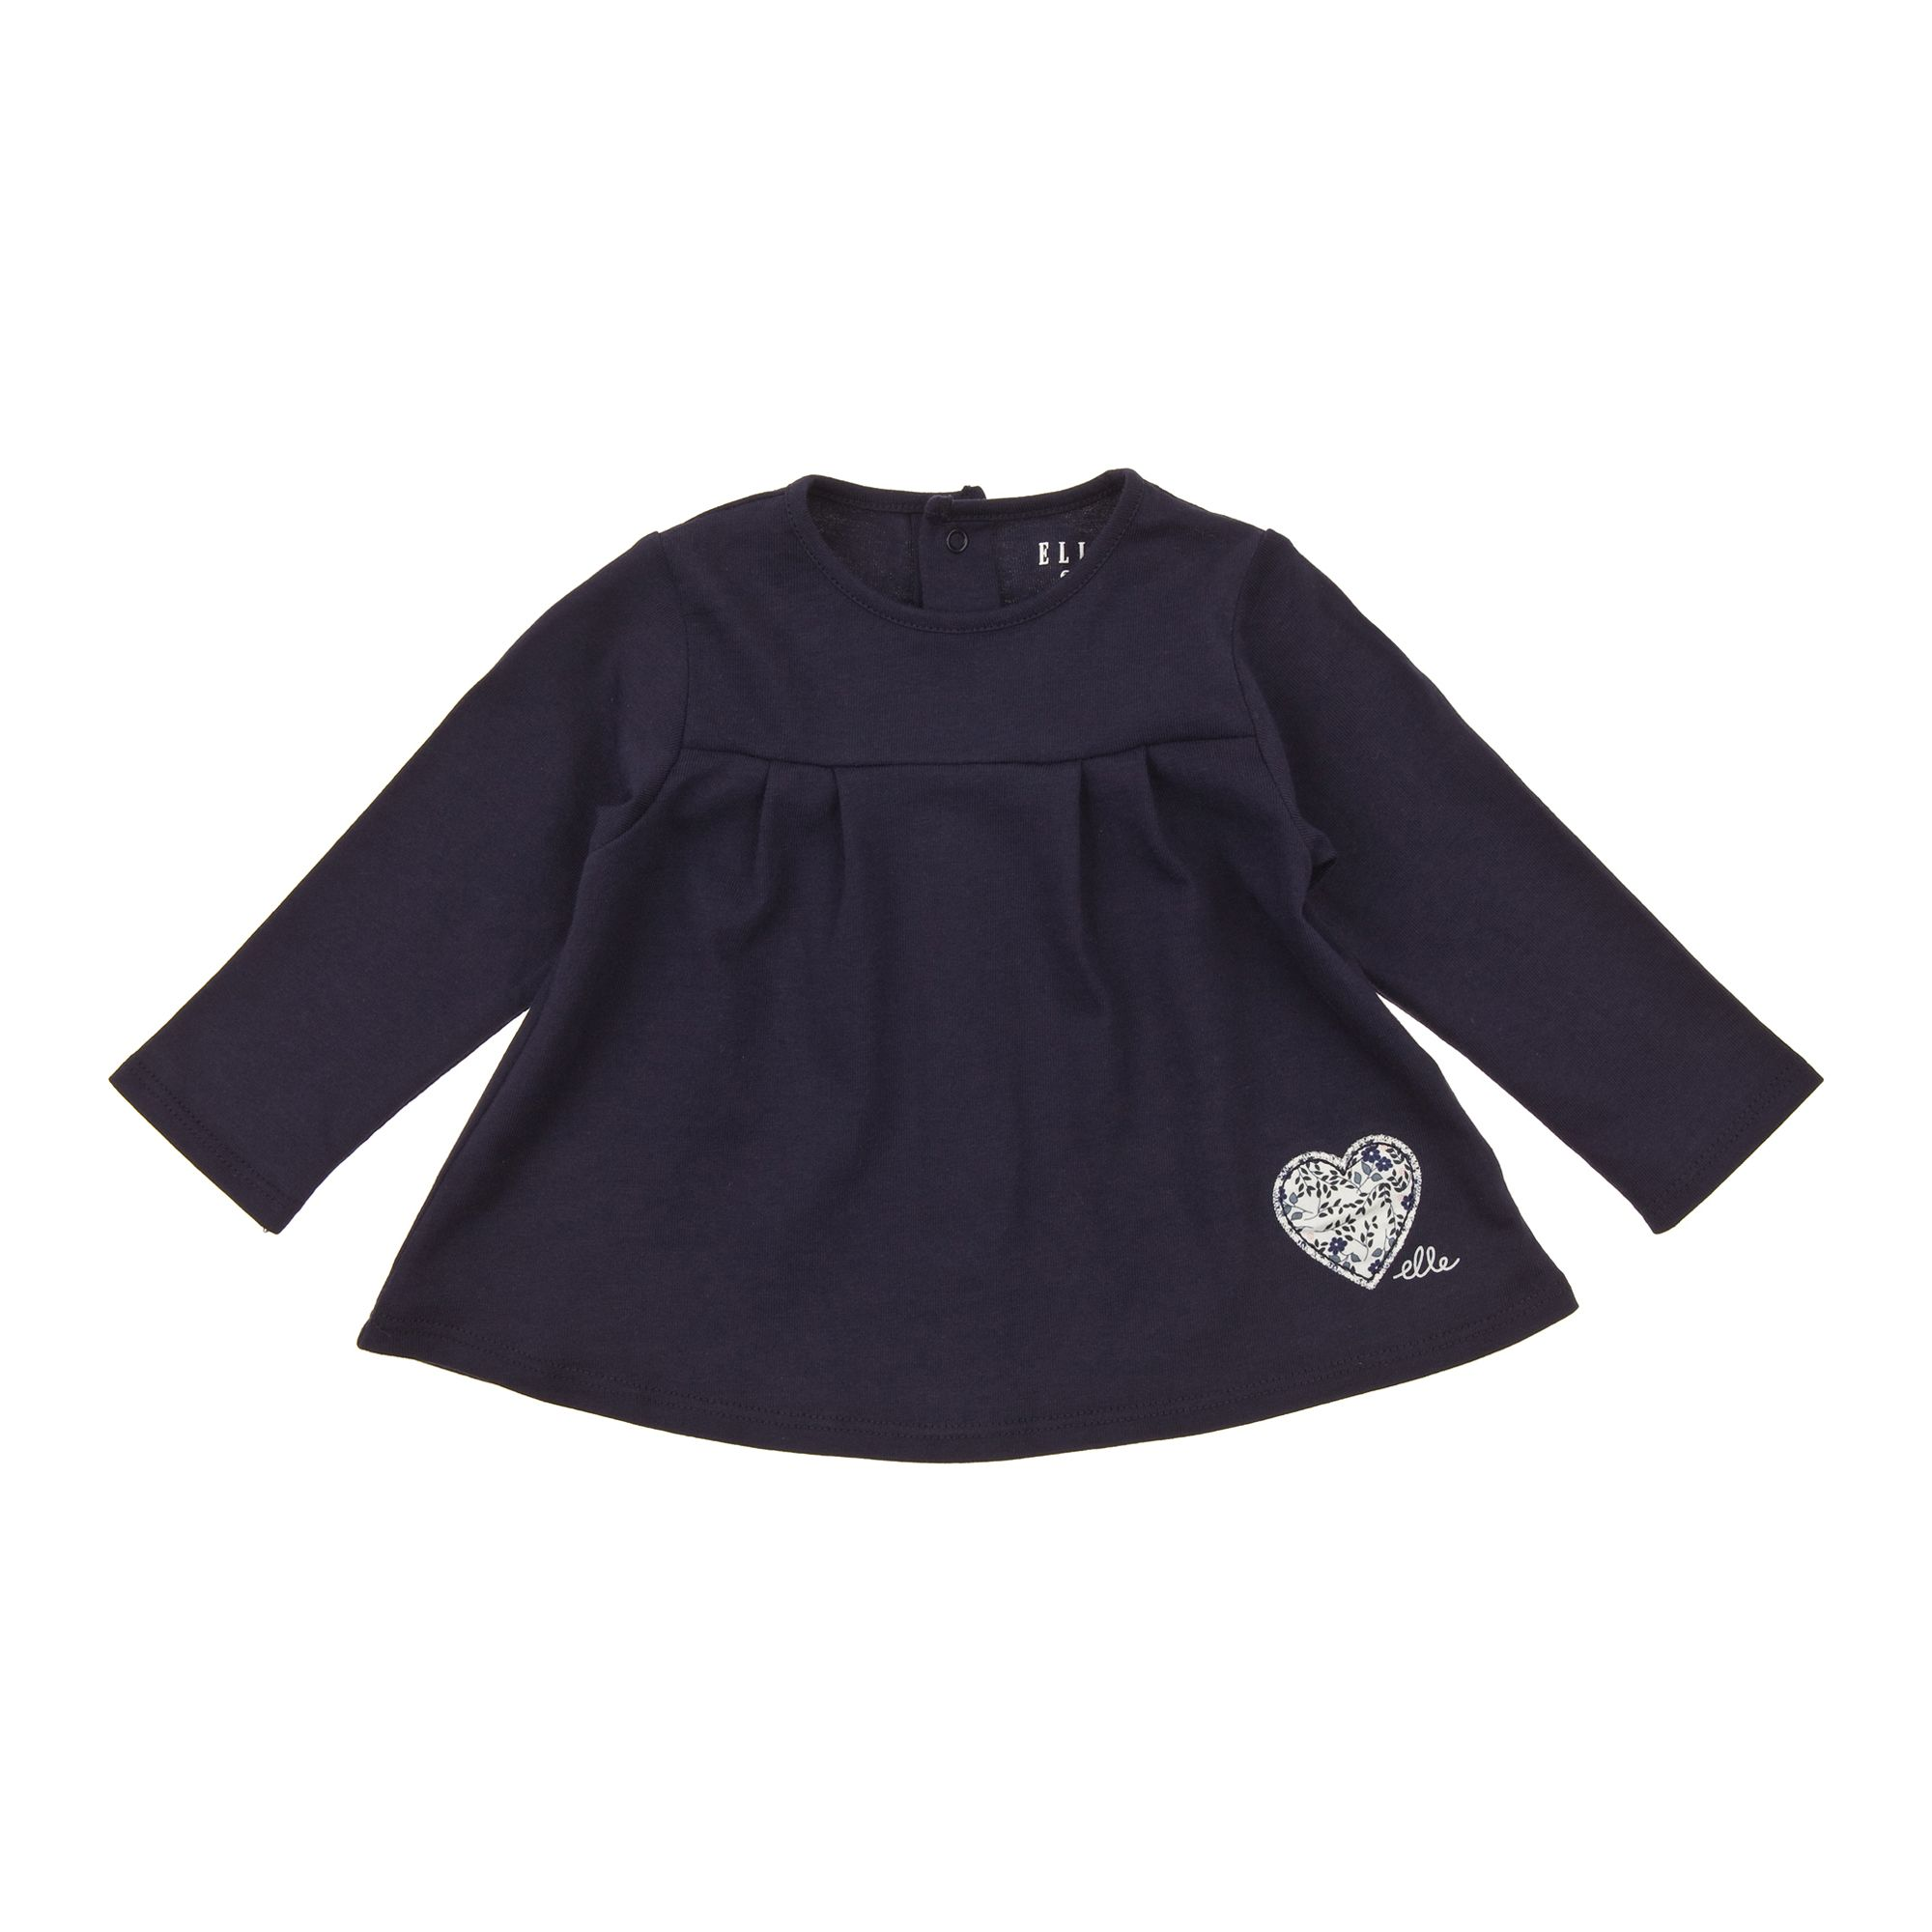 Elle Childrens Elle Long sleeved t-shirt, Navy product image